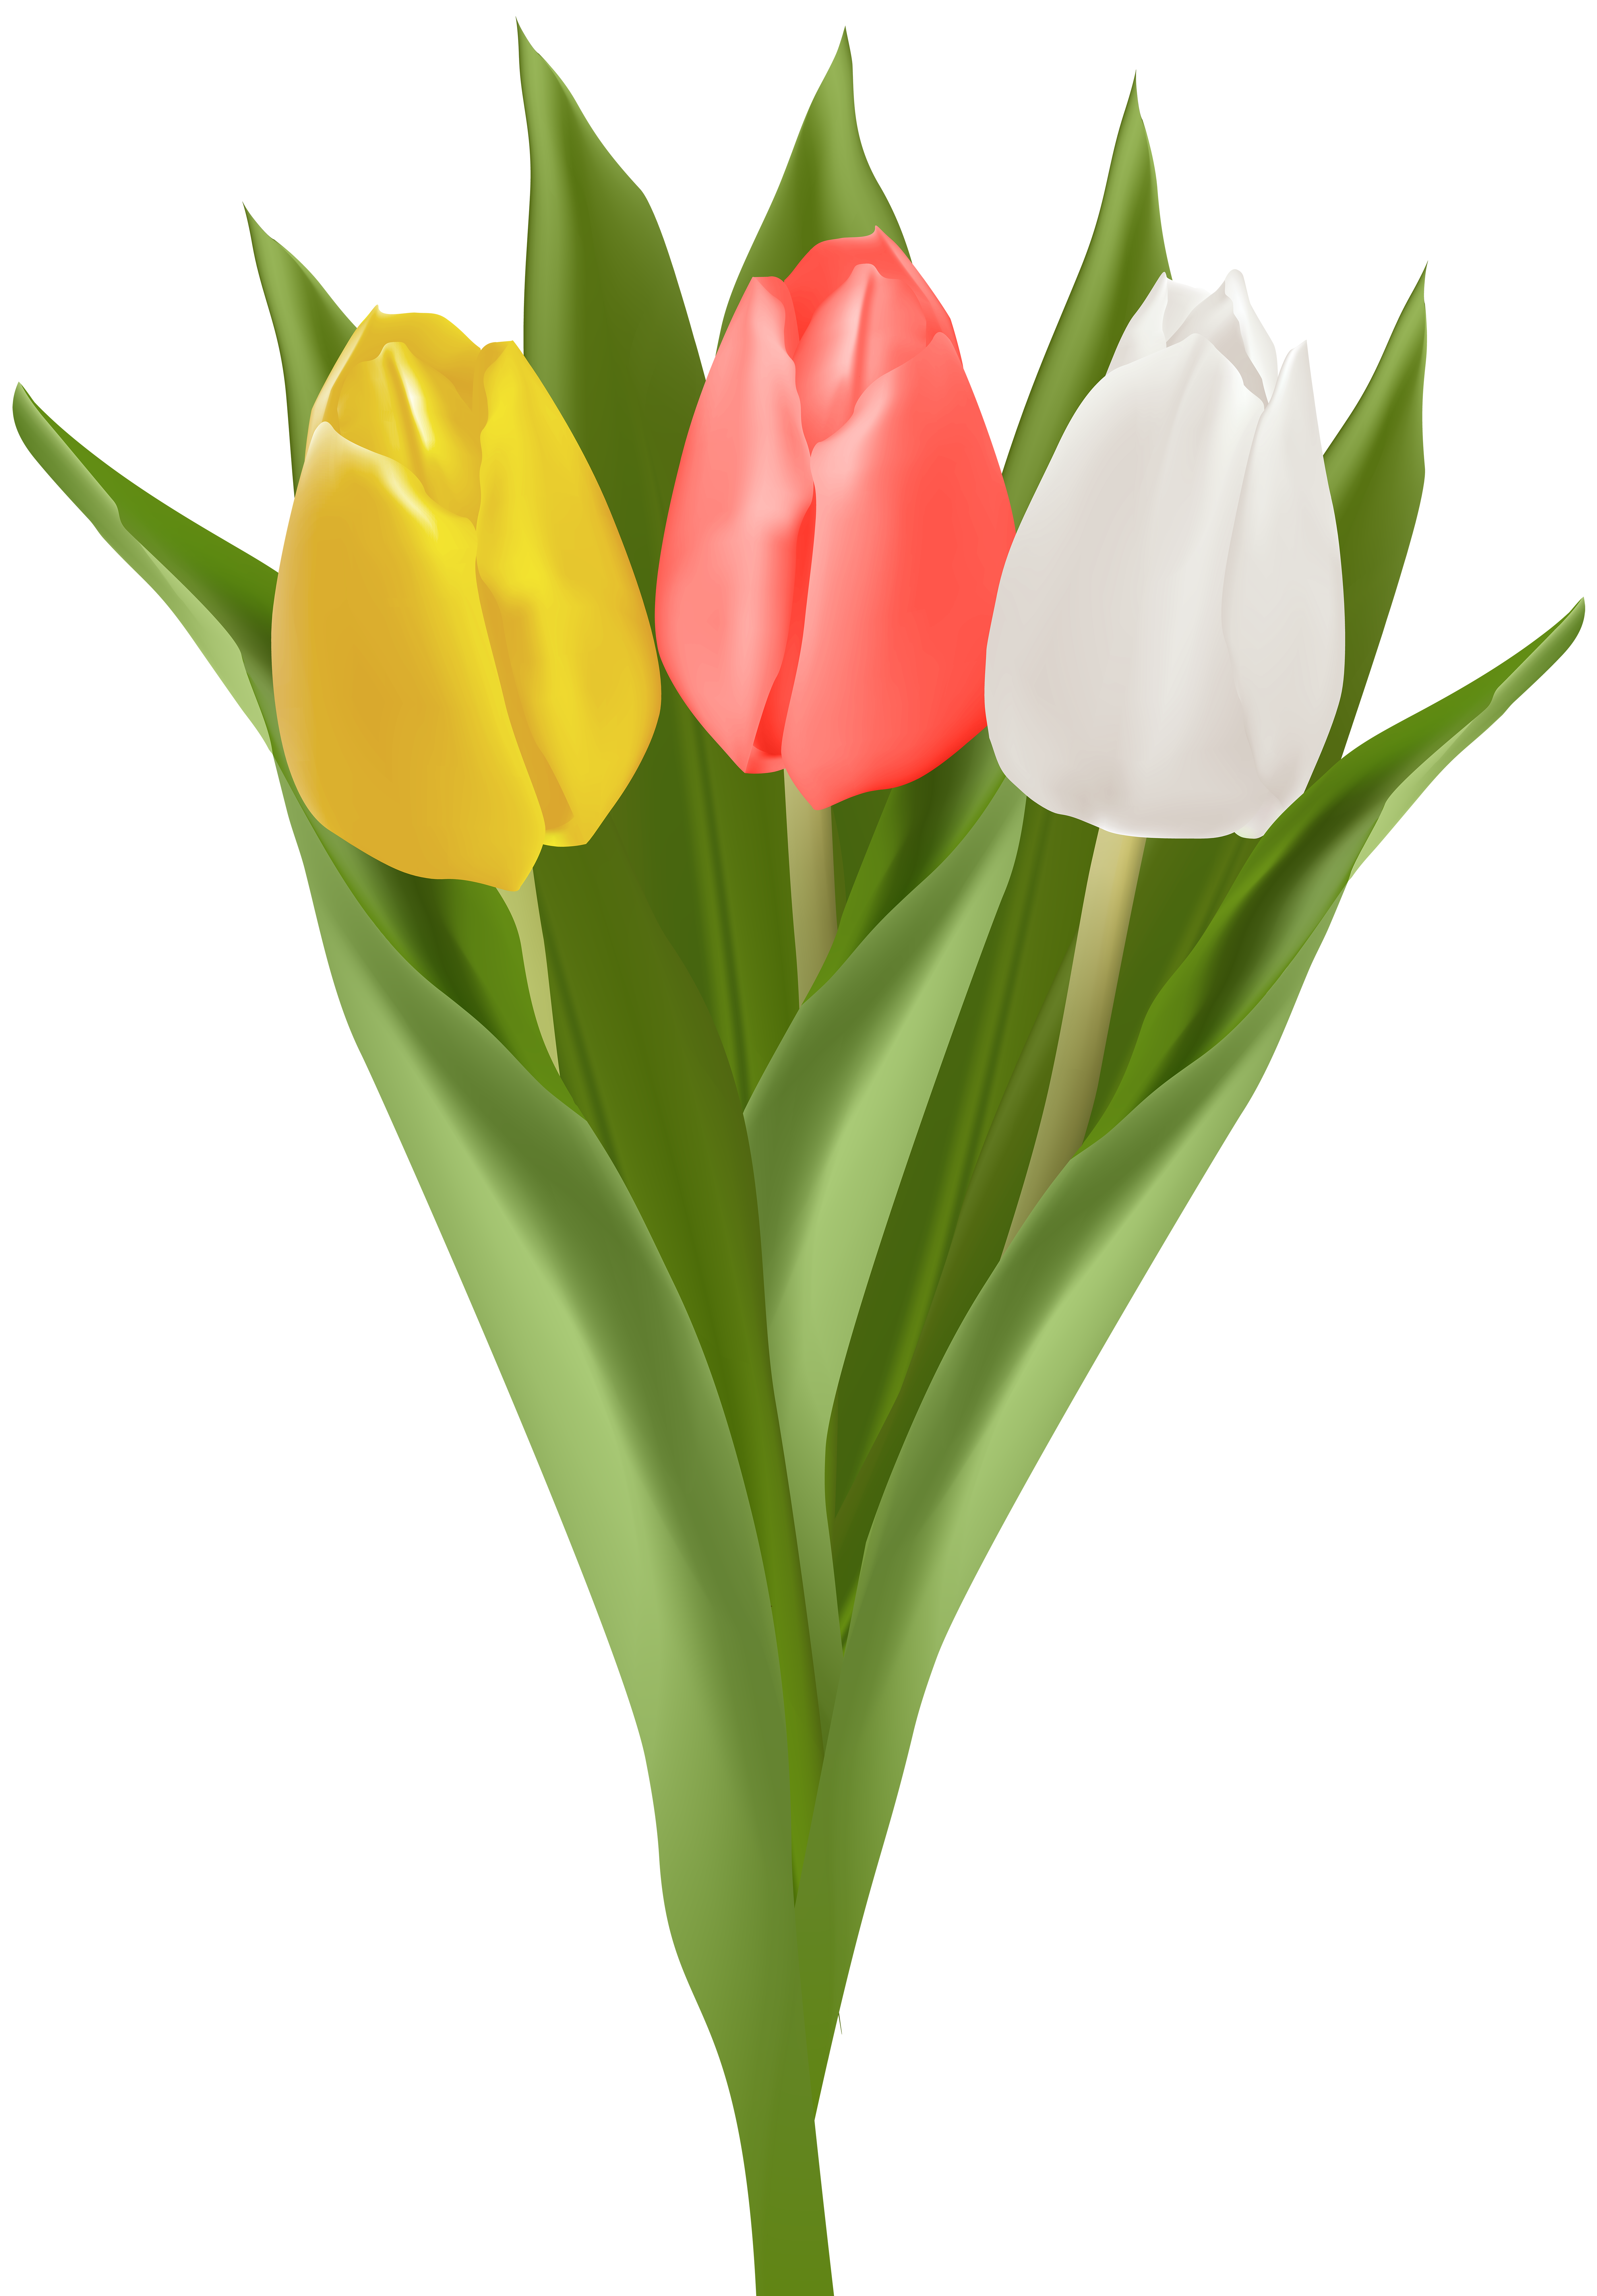 Bouquet with Tulips Clip Art Image.